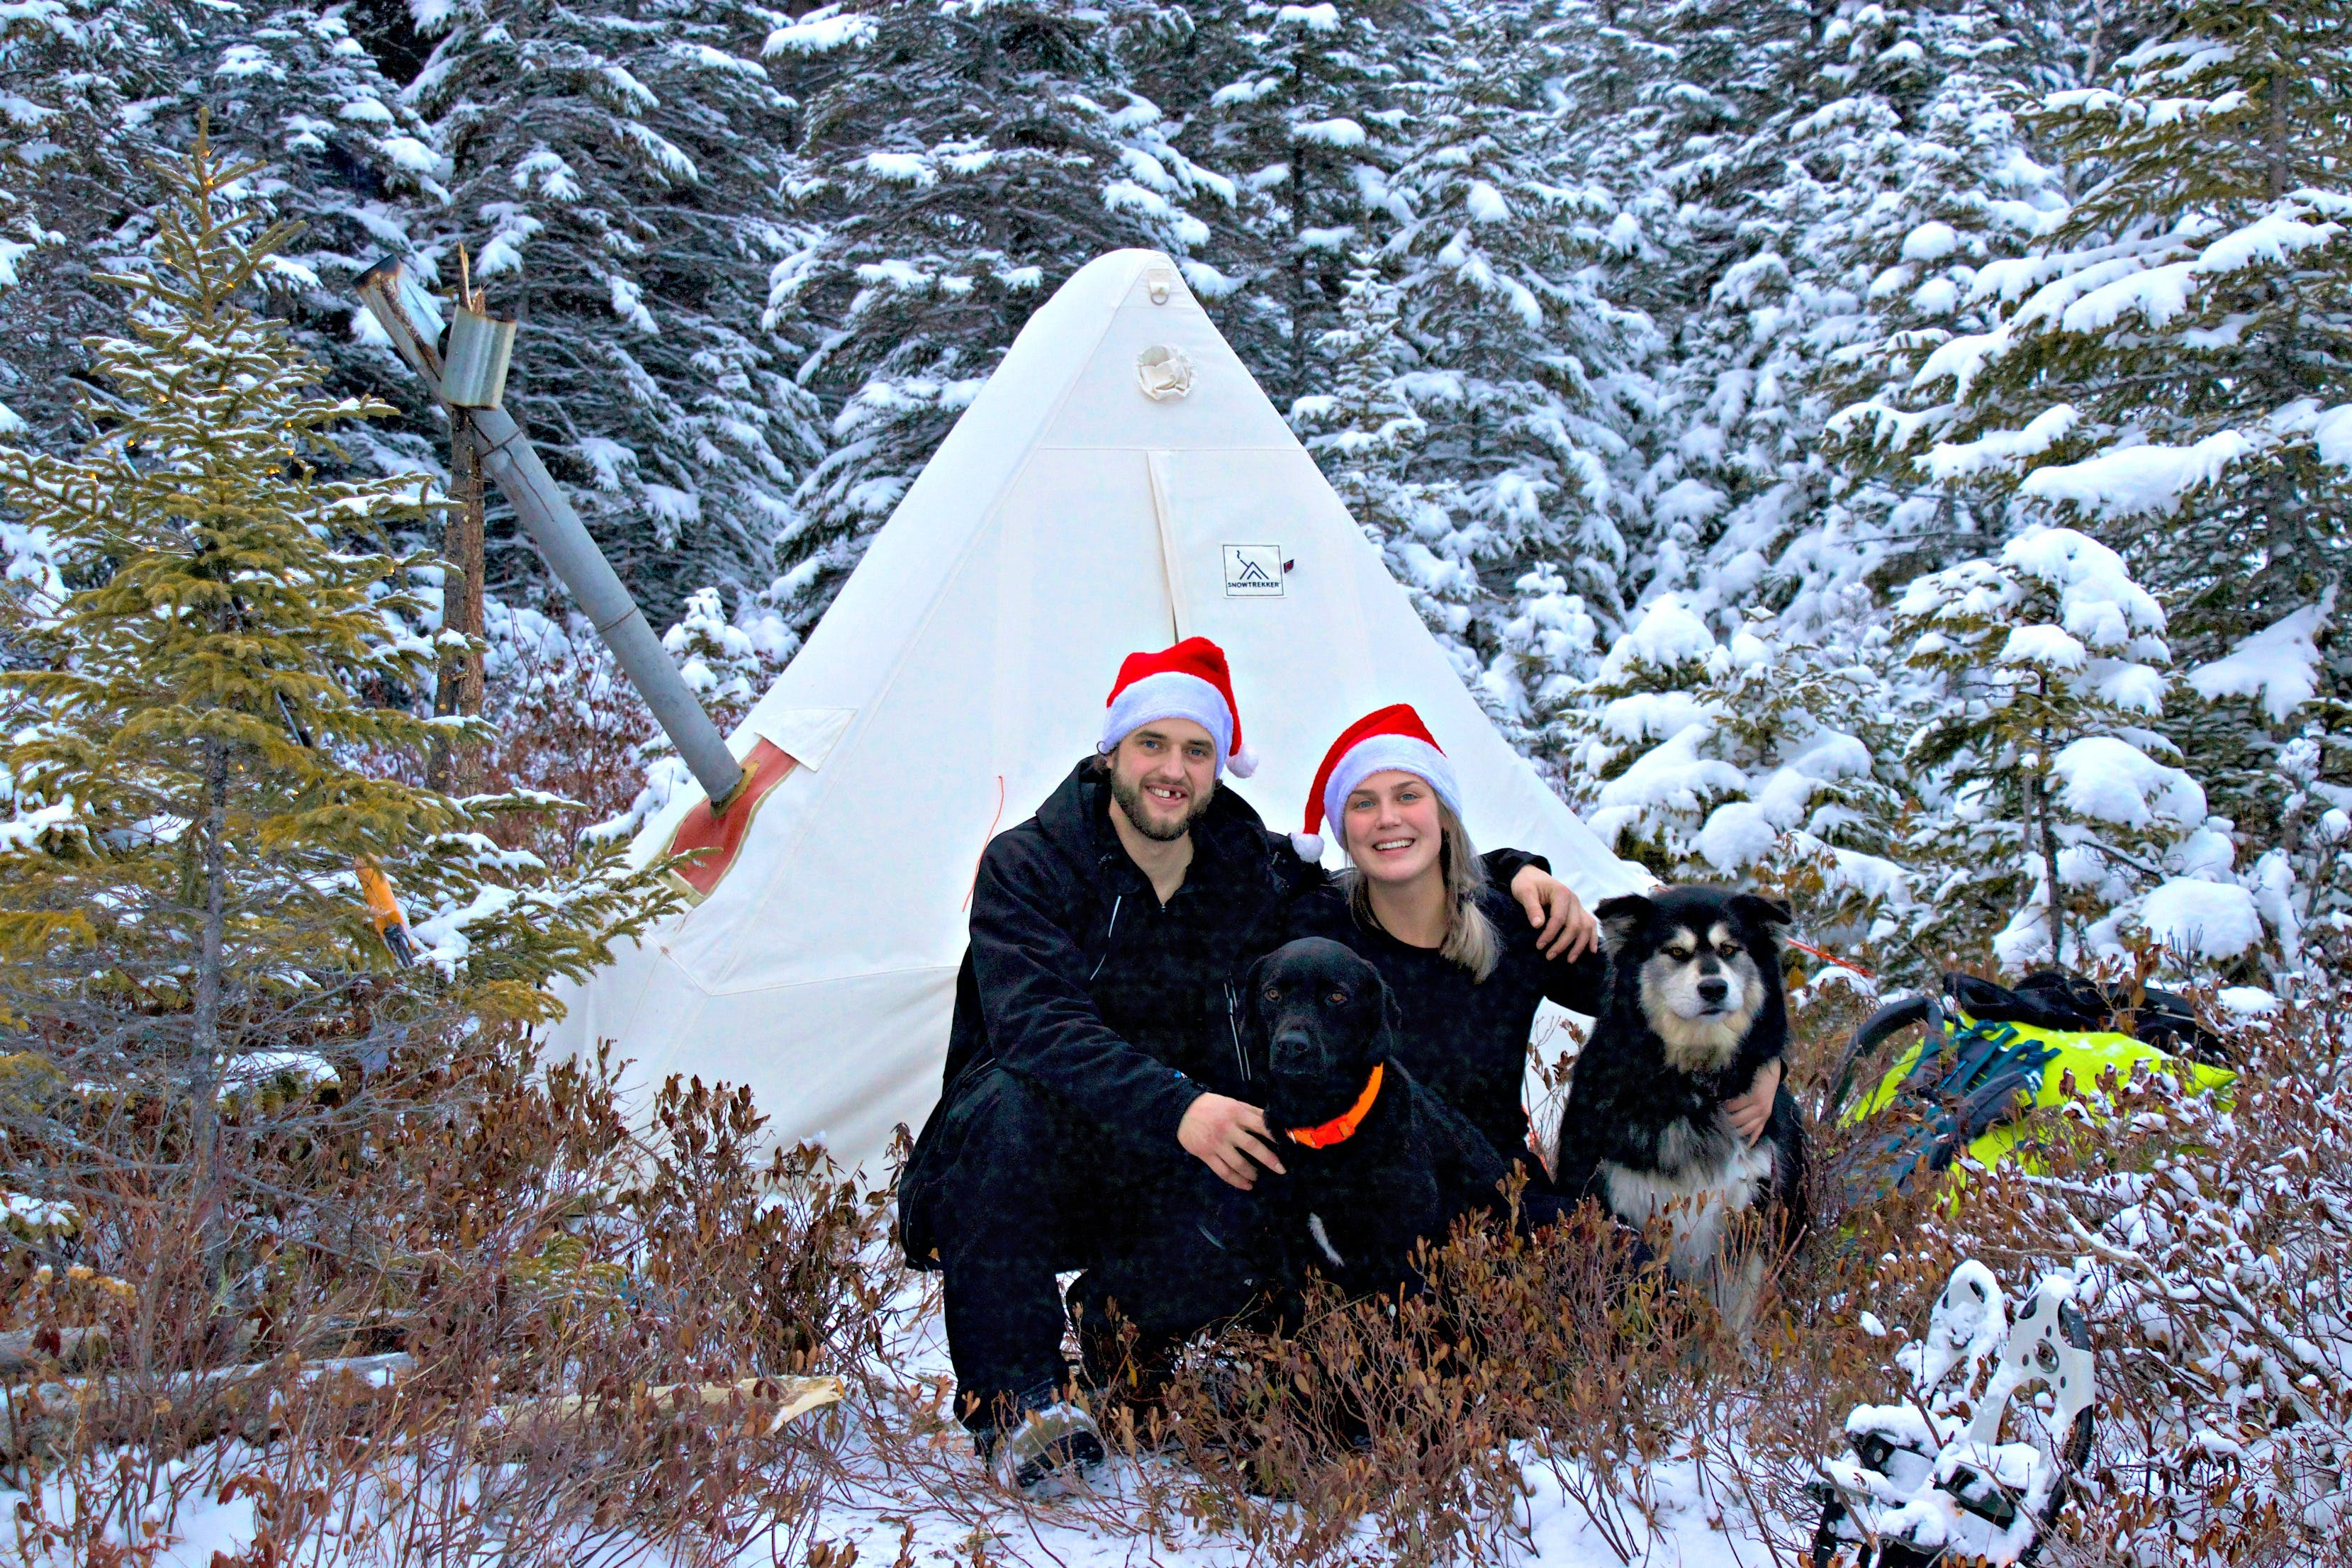 Justin Barbour with his fiancée Heather Oakley and their two dogs, Saku and Bear. Unplugging and reconnecting with nature in the Newfoundland wilderness tops the Christmas gift list for this couple.